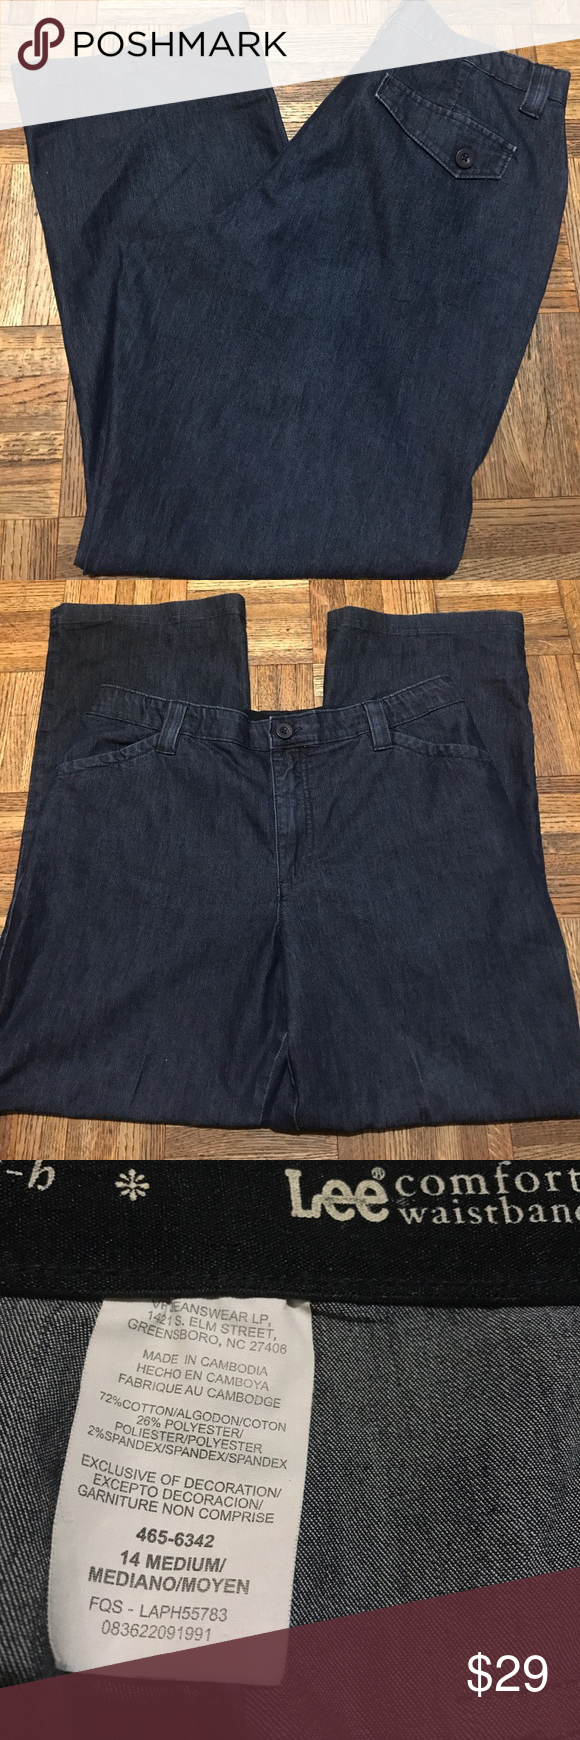 up plus sale comforter jeans capri blue wear preowned lee sz signs comfort show of waistband pin for capris